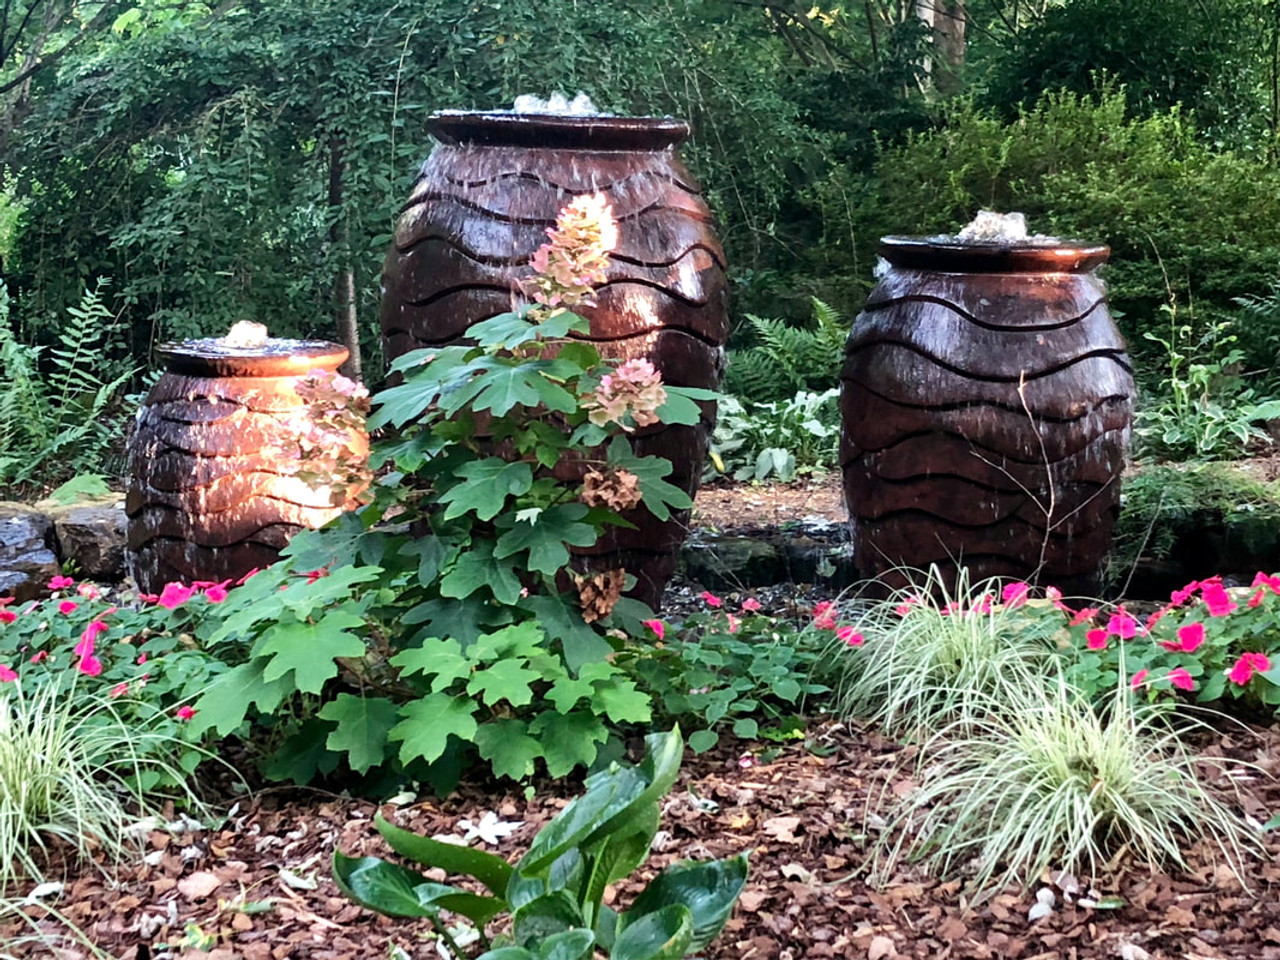 Aquascape Small Scalloped Urn Only 20 X 32 In Underwater Warehouse